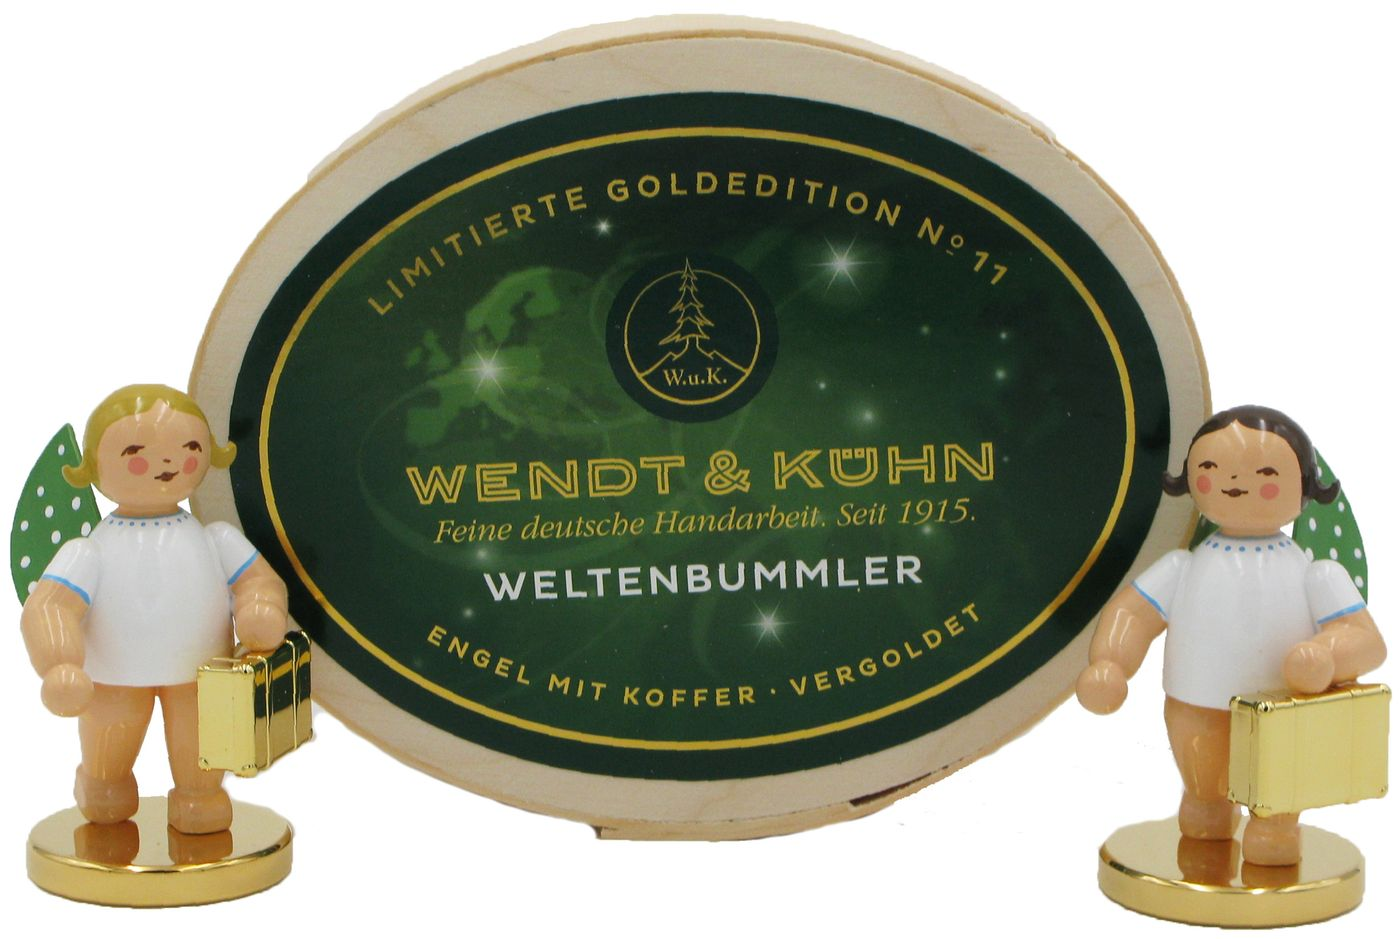 2er Set (1x blond 1x braun) Limitierte Goldedition No. 11 von Wendt & Kühn